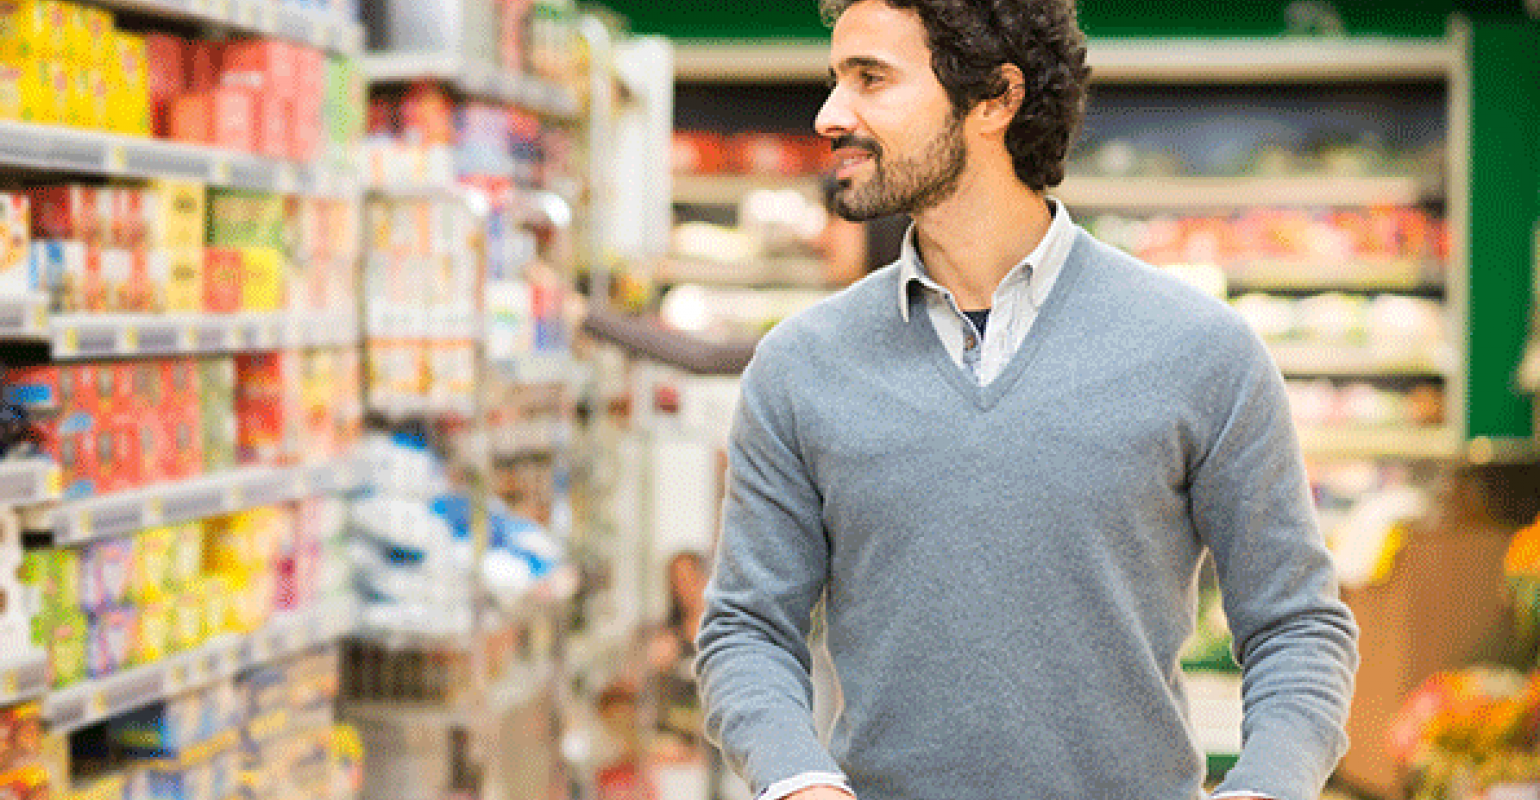 New insights for engaging Hispanic shoppers | Supermarket News